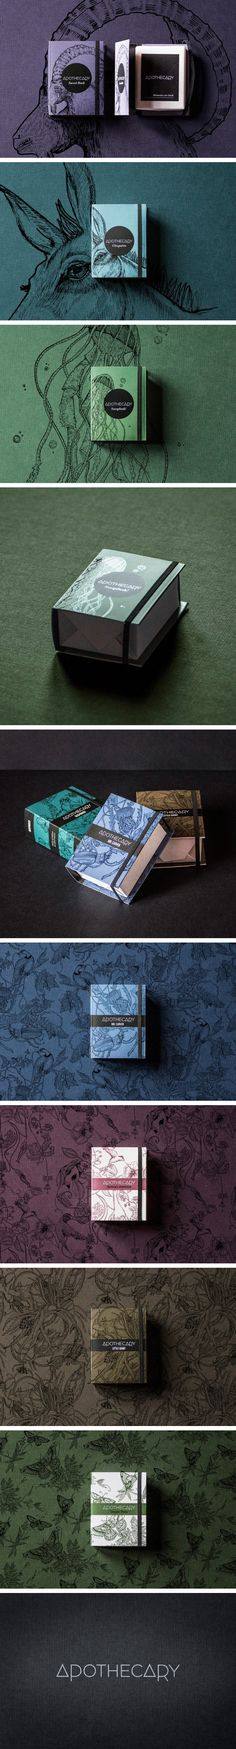 Apothecary soap packaging // by The6th Creative Studio, Italy